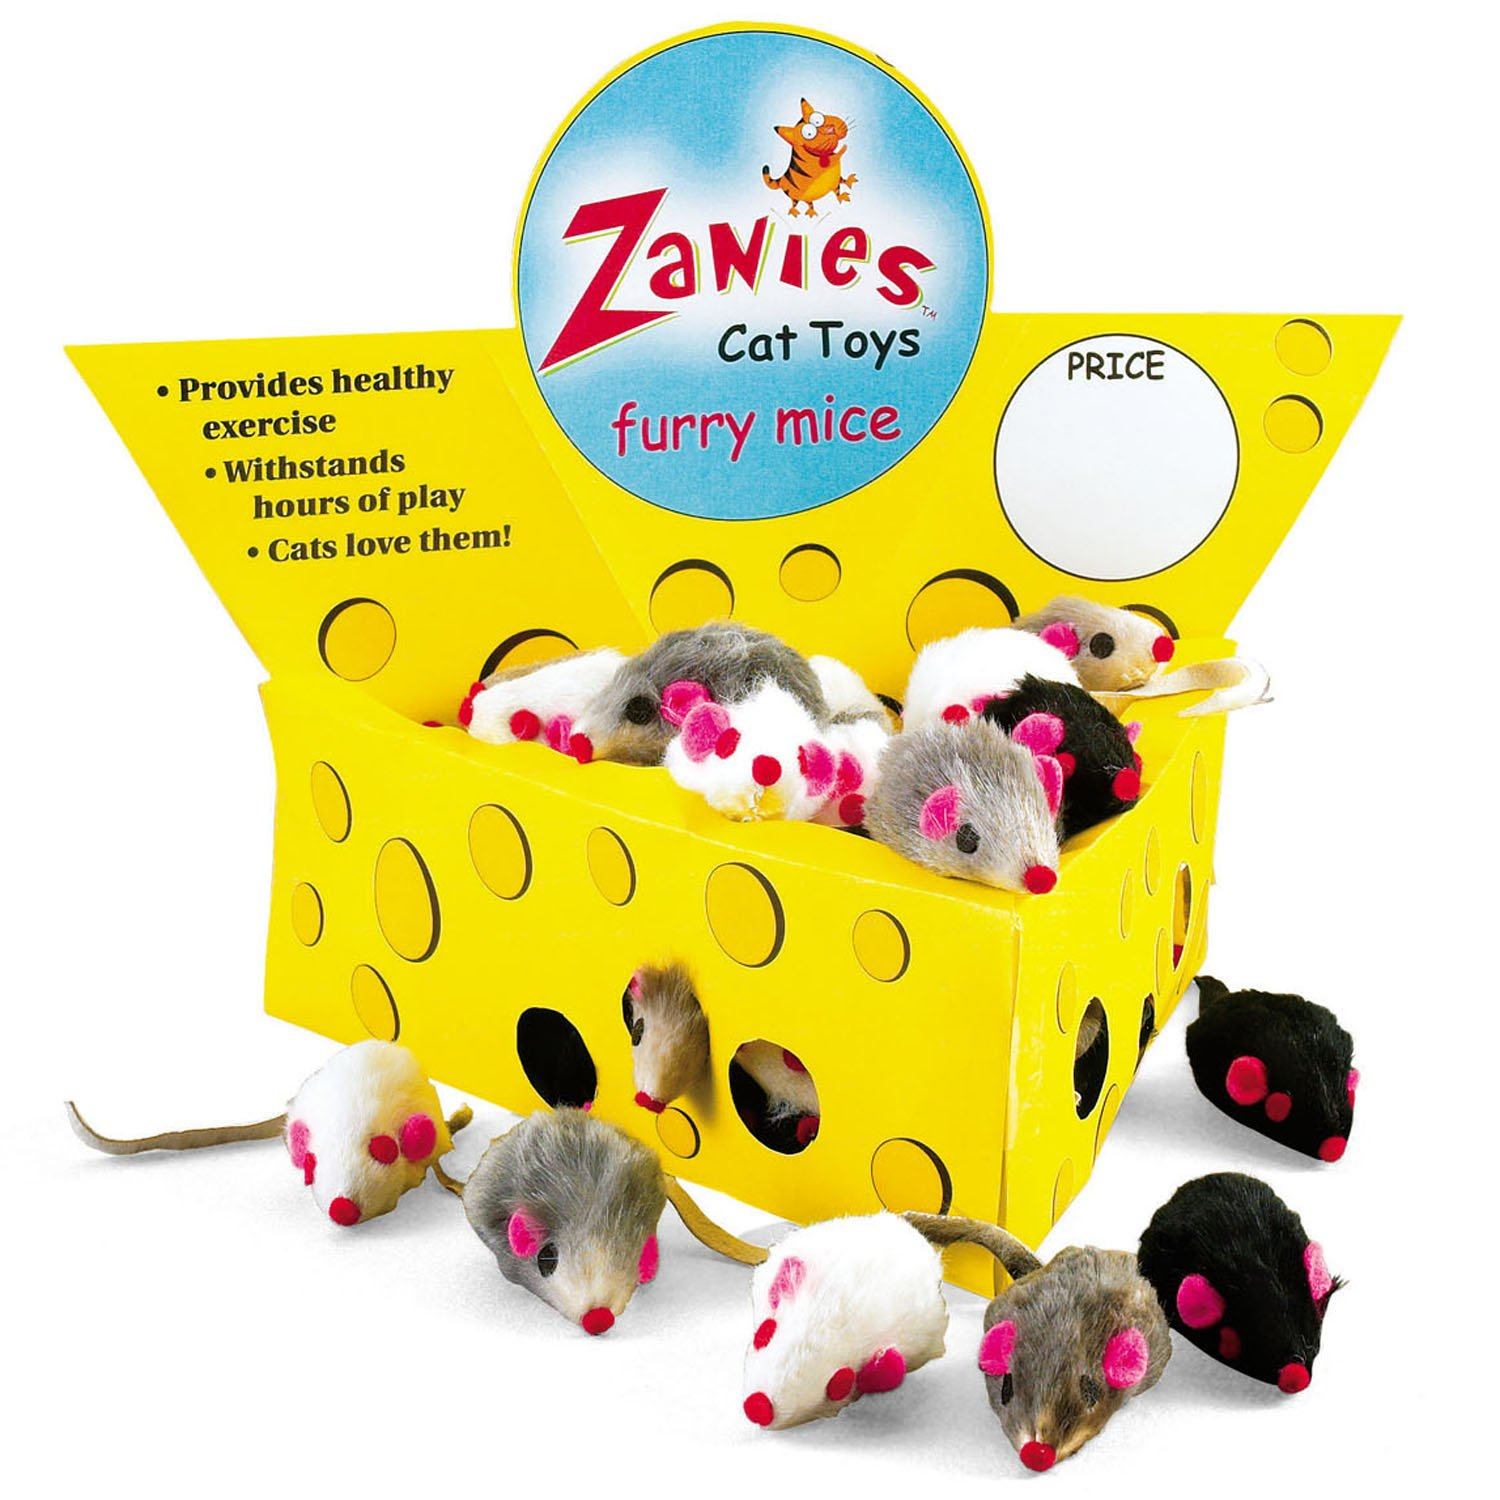 Pet Edge Zanies Cheese Wedge Display Box with 60 Furry Mice Toys for Cats - Mouse Measures 3'' in Length Including Tail